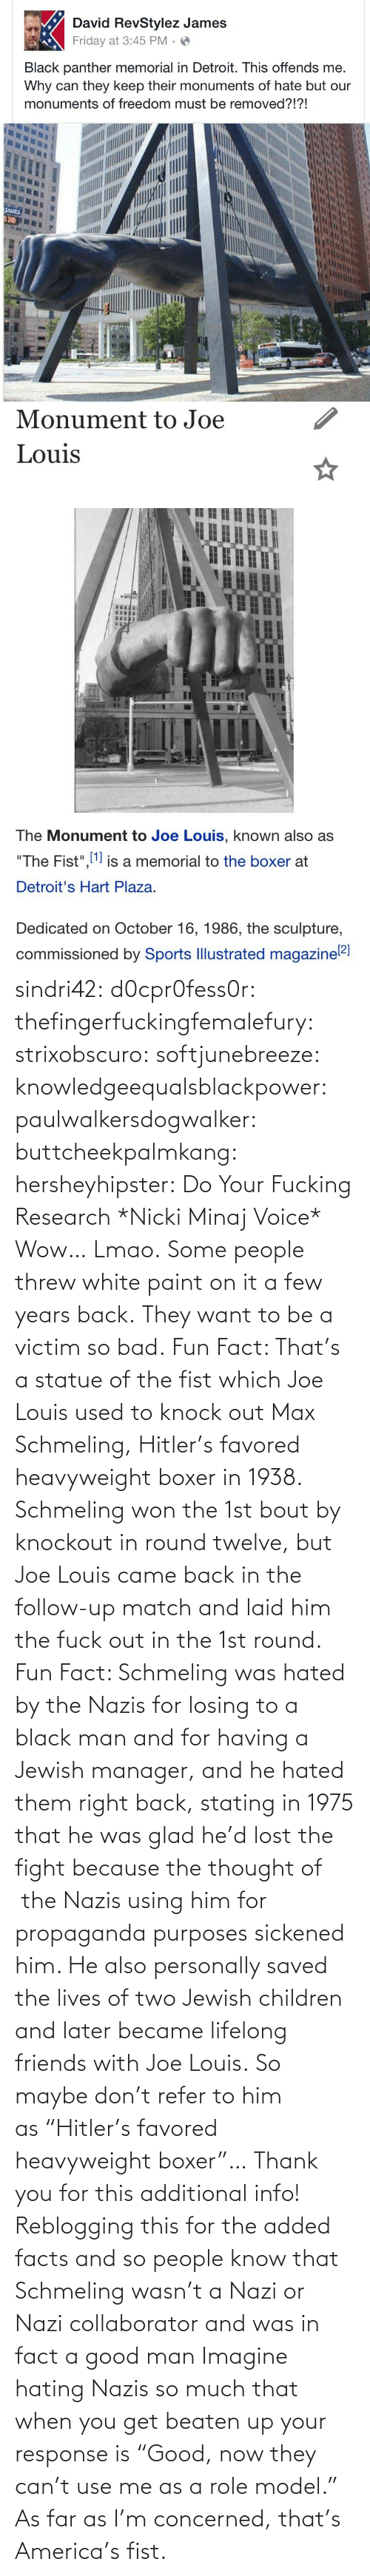 """America, Bad, and Children: sindri42:  d0cpr0fess0r:  thefingerfuckingfemalefury:  strixobscuro:  softjunebreeze:  knowledgeequalsblackpower:  paulwalkersdogwalker:   buttcheekpalmkang:   hersheyhipster:  Do Your Fucking Research *Nicki Minaj Voice*    Wow… Lmao.   Some people threw white paint on it a few years back.   They want to be a victim so bad.  Fun Fact: That's a statue of the fistwhich Joe Louis used to knockout Max Schmeling, Hitler's favored heavyweight boxer in 1938. Schmeling won the 1st bout by knockout in roundtwelve, but Joe Louis came back in the follow-up match and laid him the fuck out in the 1st round.  Fun Fact: Schmeling was hated by the Nazis for losing to a black man and for having a Jewish manager, and he hated them right back, stating in 1975 that he was glad he'd lost the fight because the thought of the Nazis using him for propaganda purposes sickened him. He also personally saved the lives of two Jewish children and later became lifelong friends with Joe Louis. So maybe don't refer to him as""""Hitler's favored heavyweight boxer""""…  Thank you for this additional info! Reblogging this for the added facts and so people know that Schmeling wasn't a Nazi or Nazi collaborator and was in fact a good man   Imagine hating Nazis so much that when you get beaten up your response is """"Good, now they can't use me as a role model.""""  As far as I'm concerned, that's America's fist."""